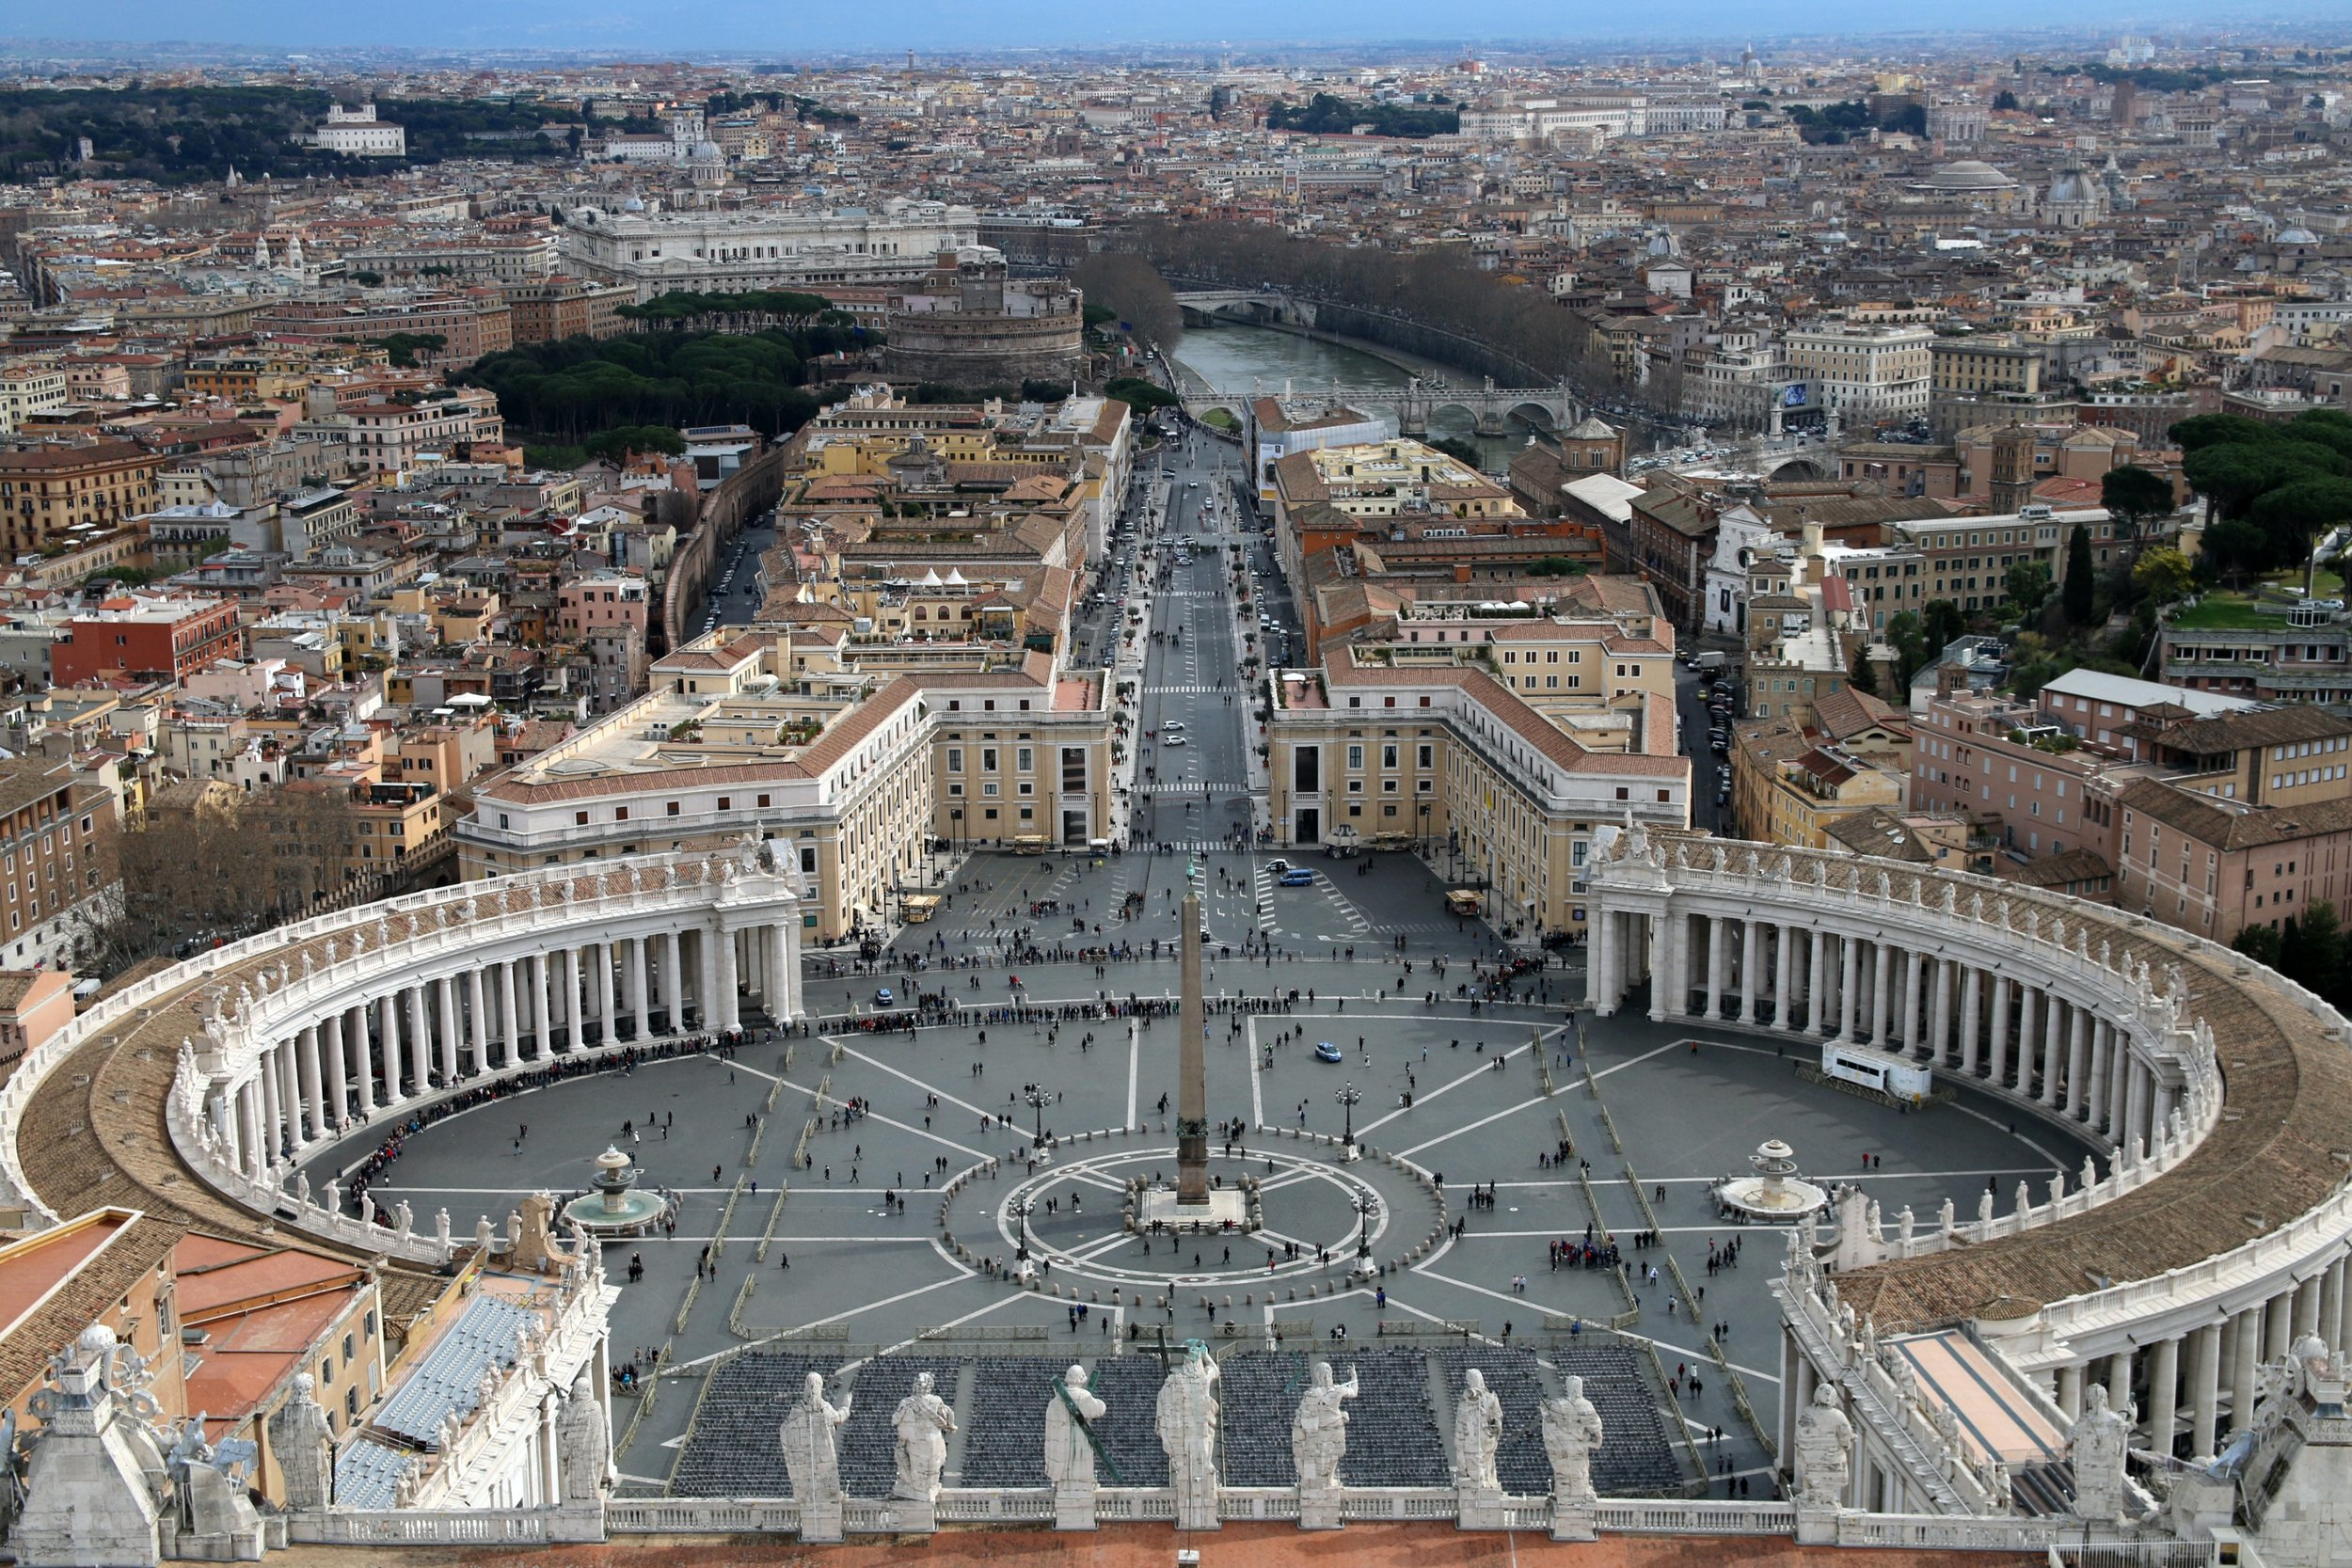 View over St Peter's Square from the top of the basilica